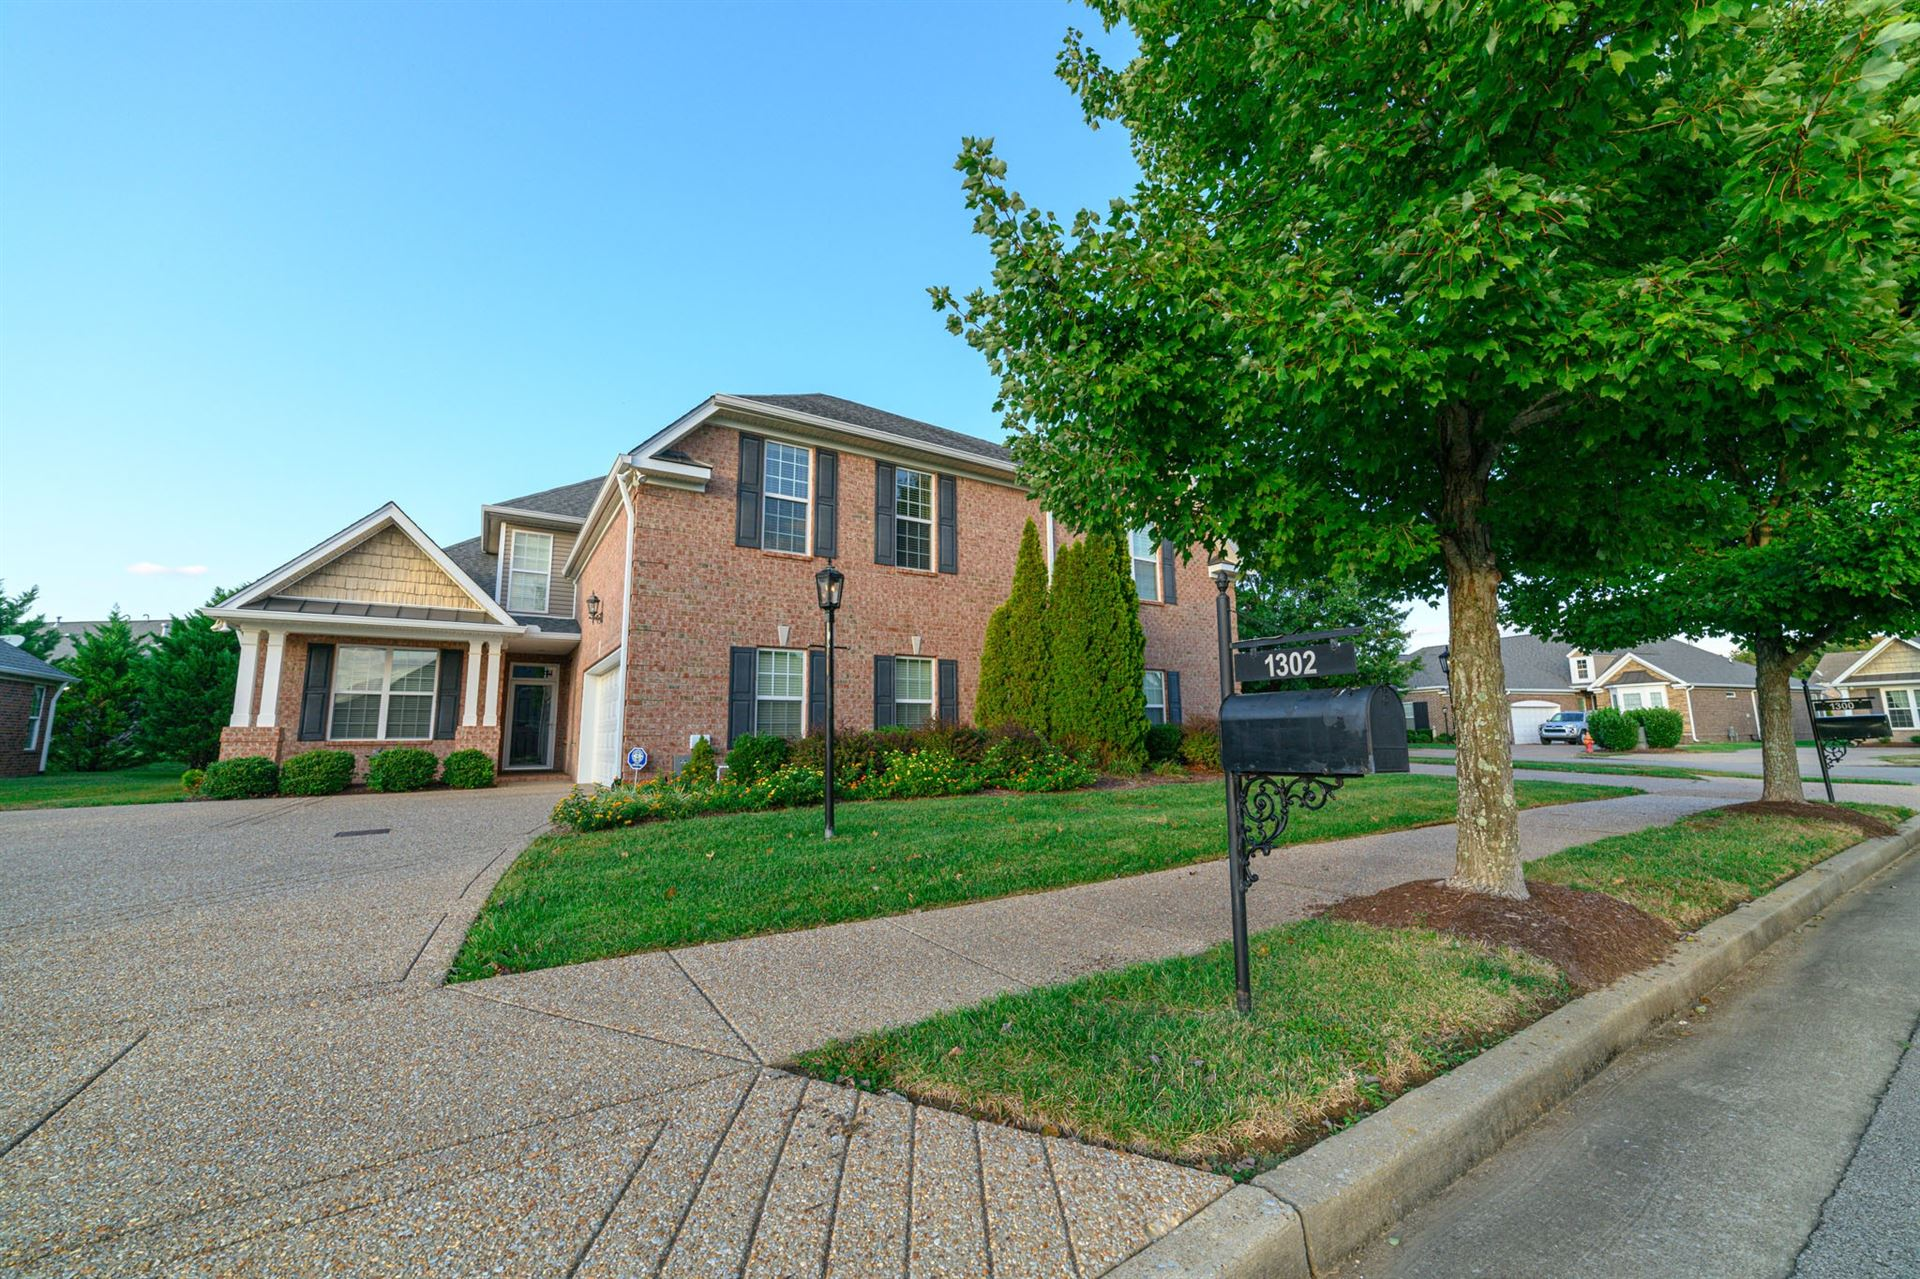 Photo of 1302 Waxwing Dr, Hermitage, TN 37076 (MLS # 2105764)